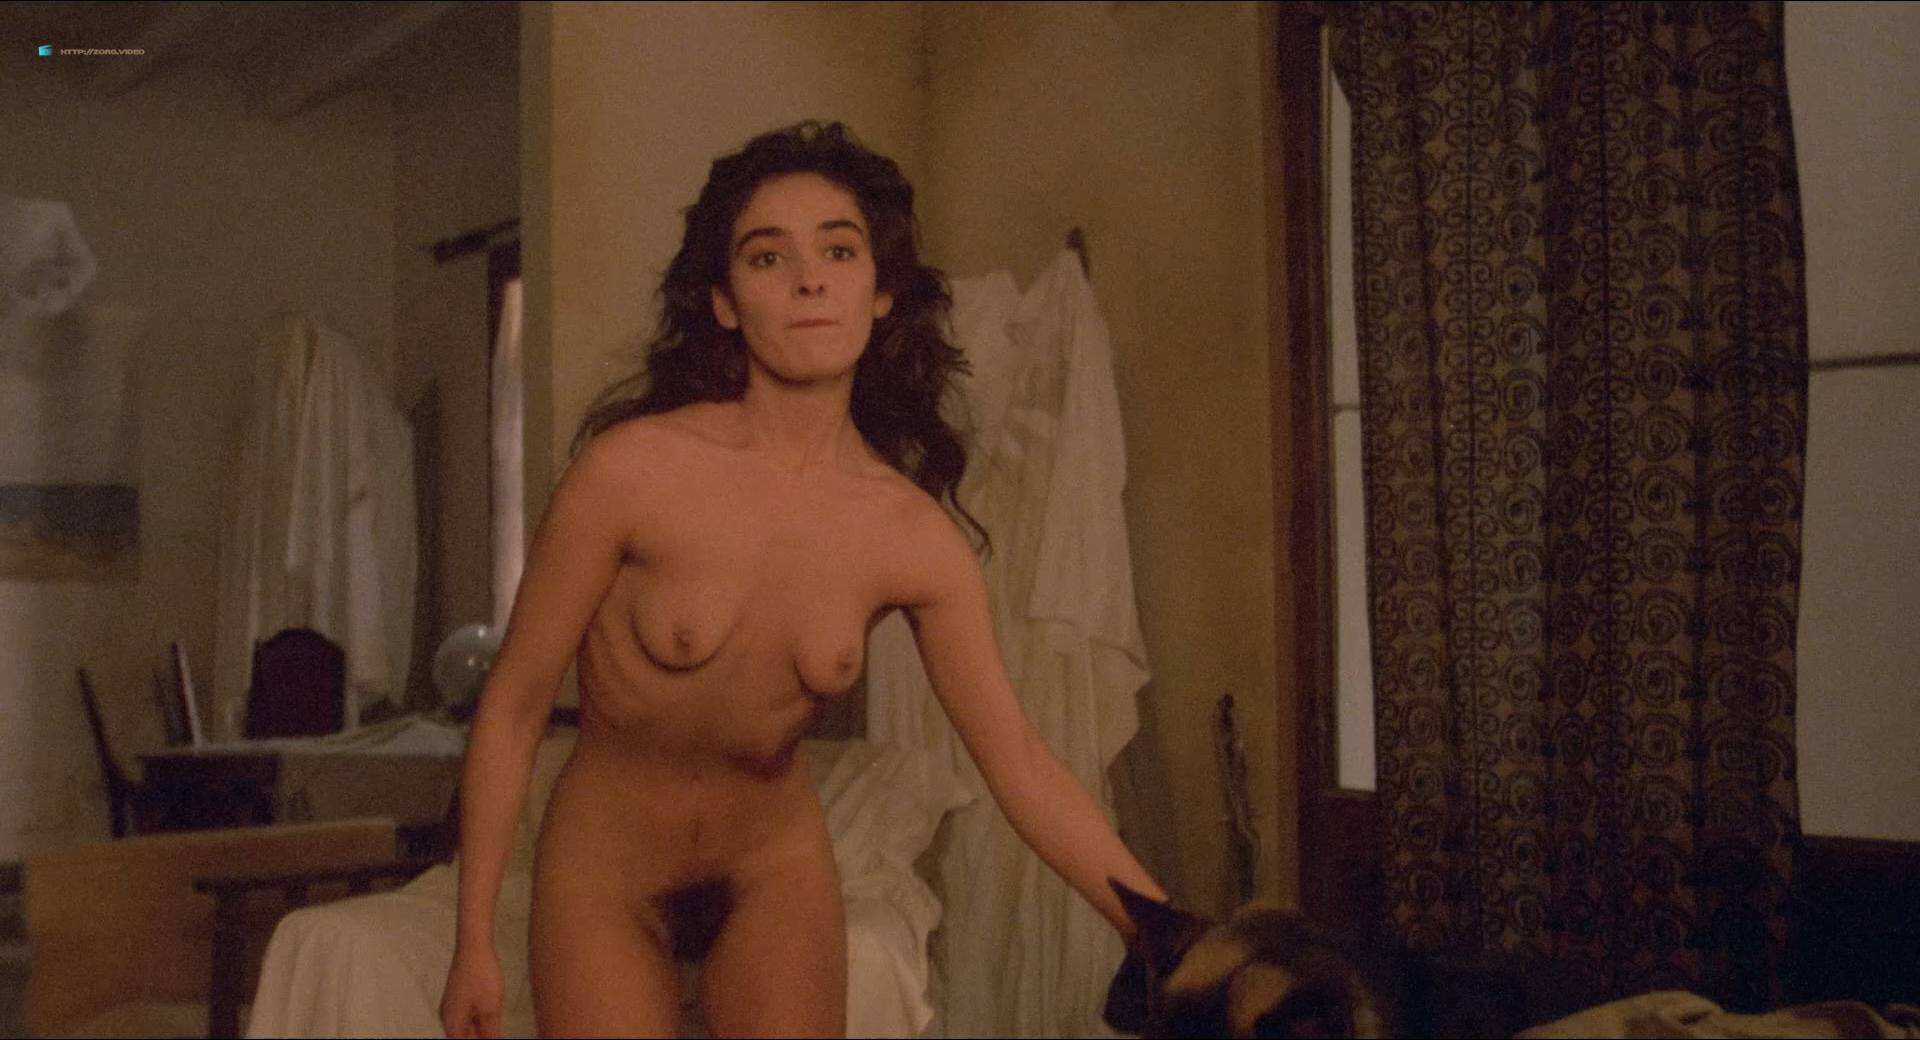 full frontal movie nudes pussy